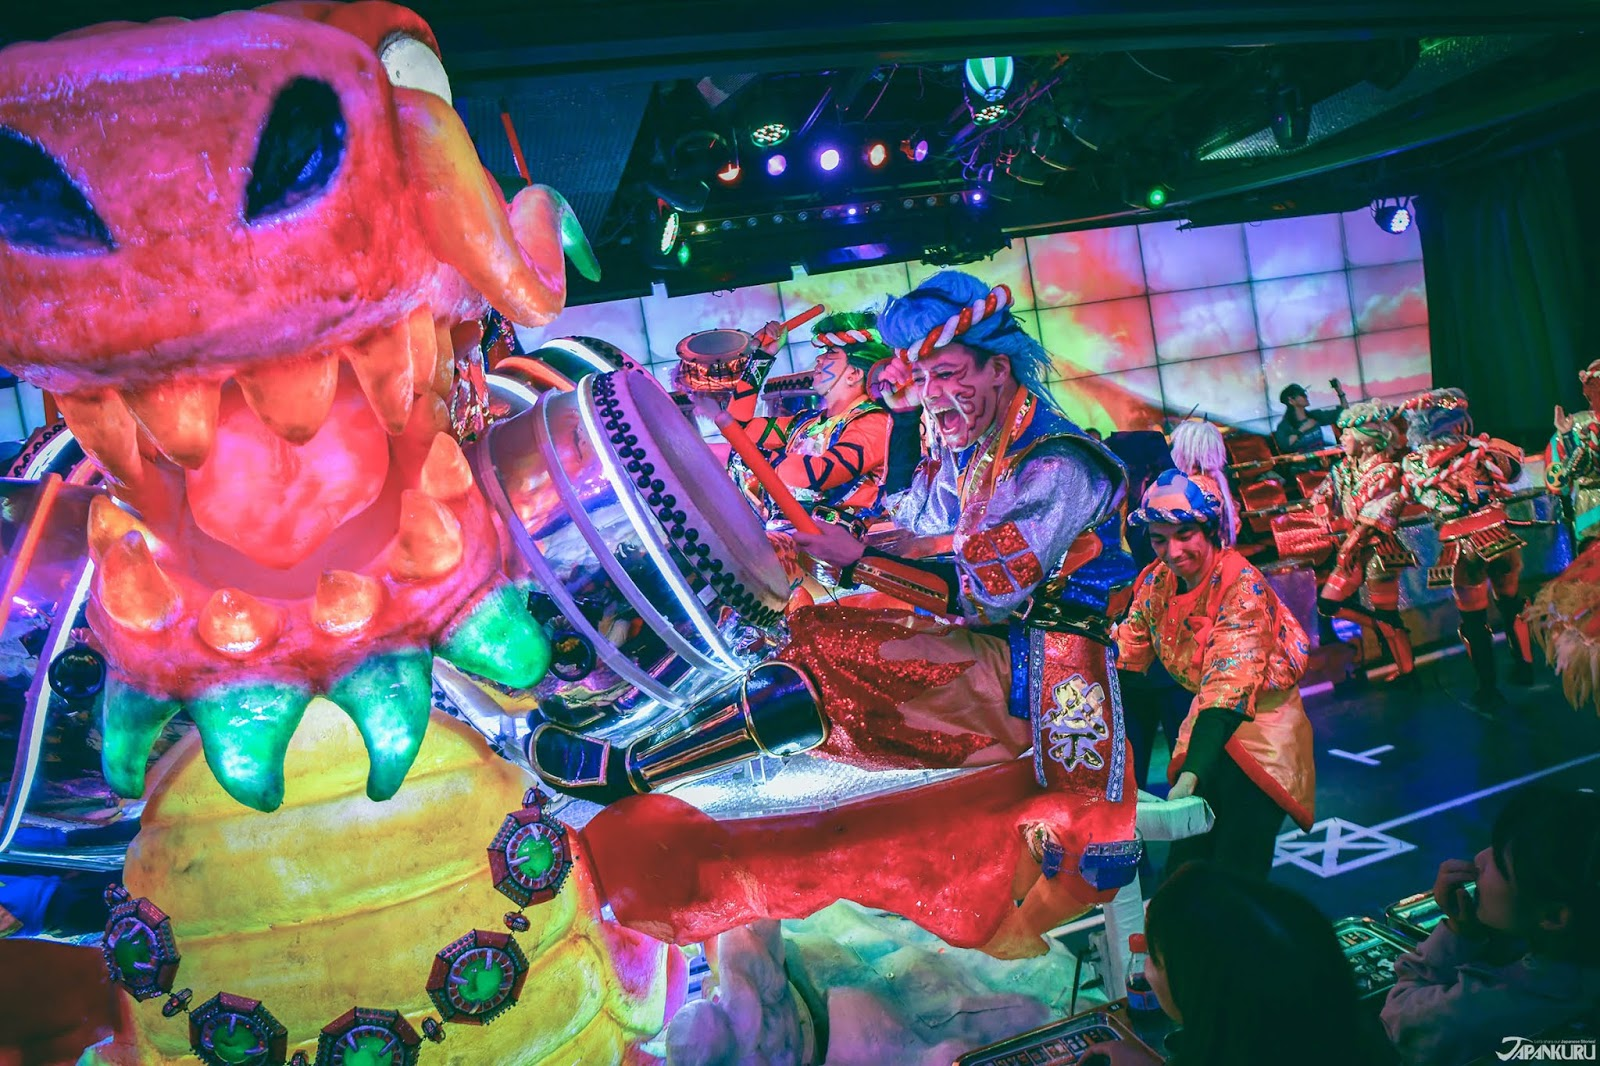 JAPANKURU: 25% Off Robot Restaurant Discount Ticket | We Went to See